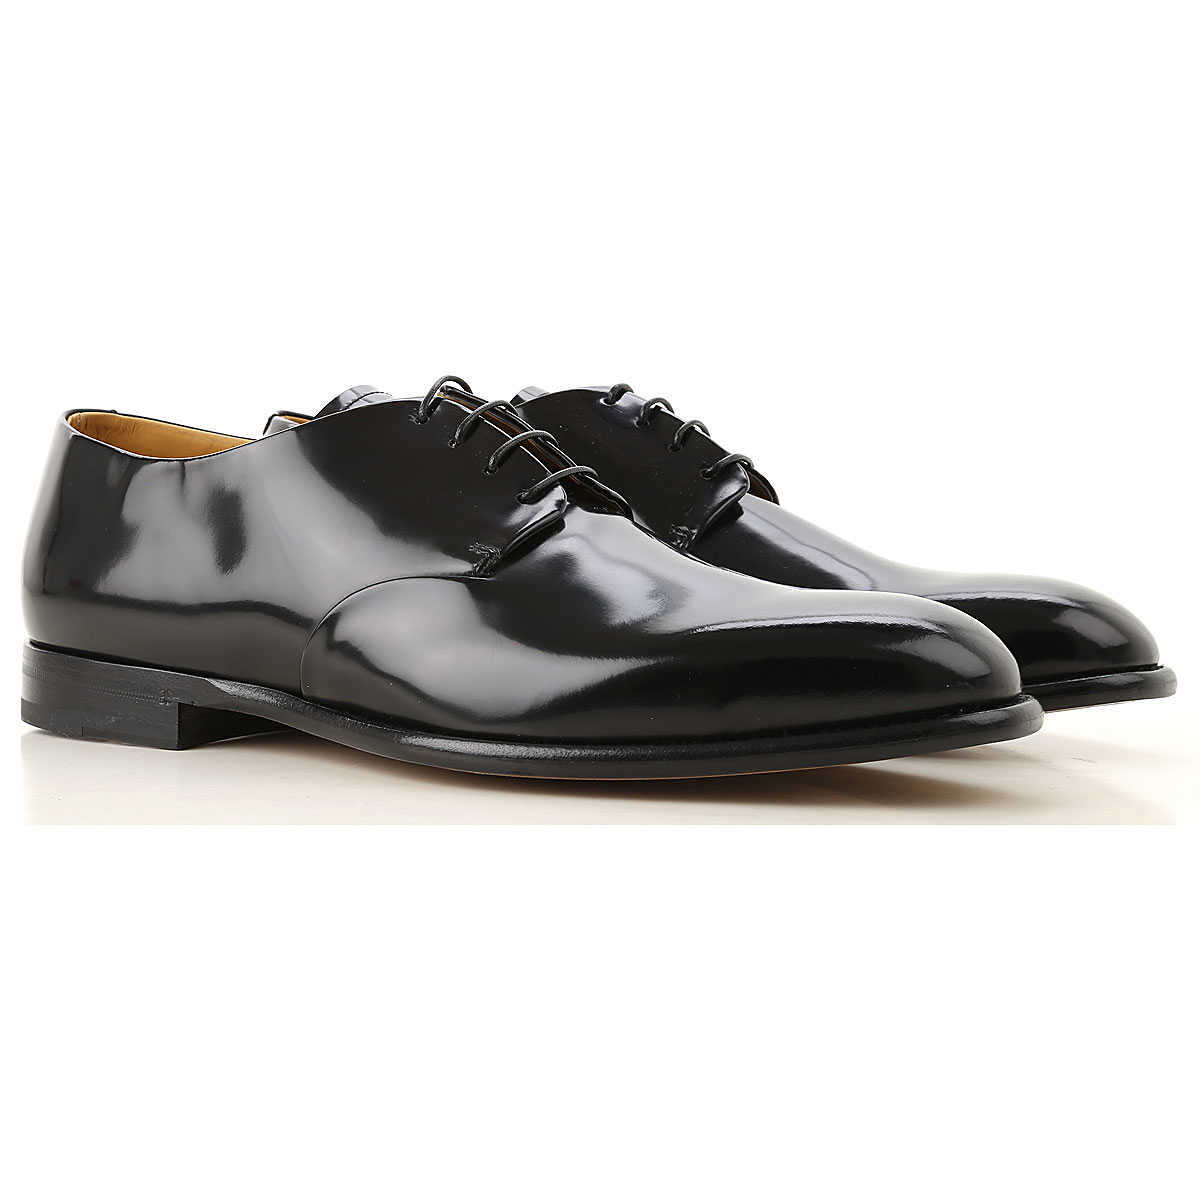 Fabi Lace Up Shoes for Men Oxfords 10 6 7 7.5 8 8.5 9 Derbies and Brogues On Sale UK - GOOFASH